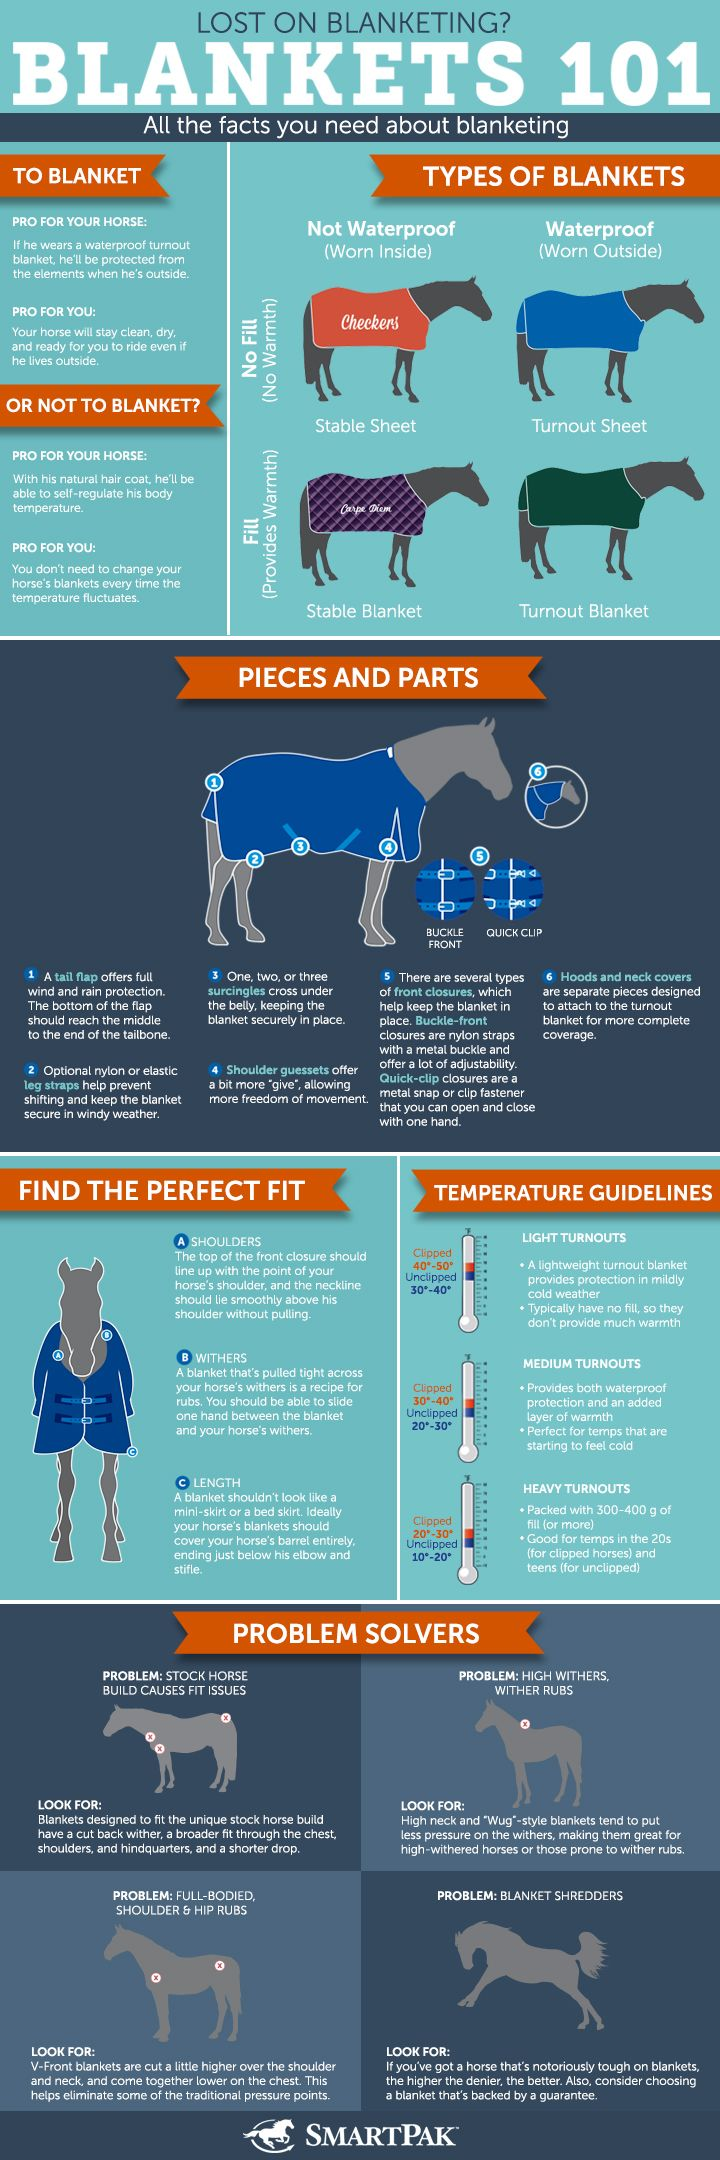 Confused about when and how to blanket your horse? Check out our handy guide! @SMRequestrian stylemyride.com